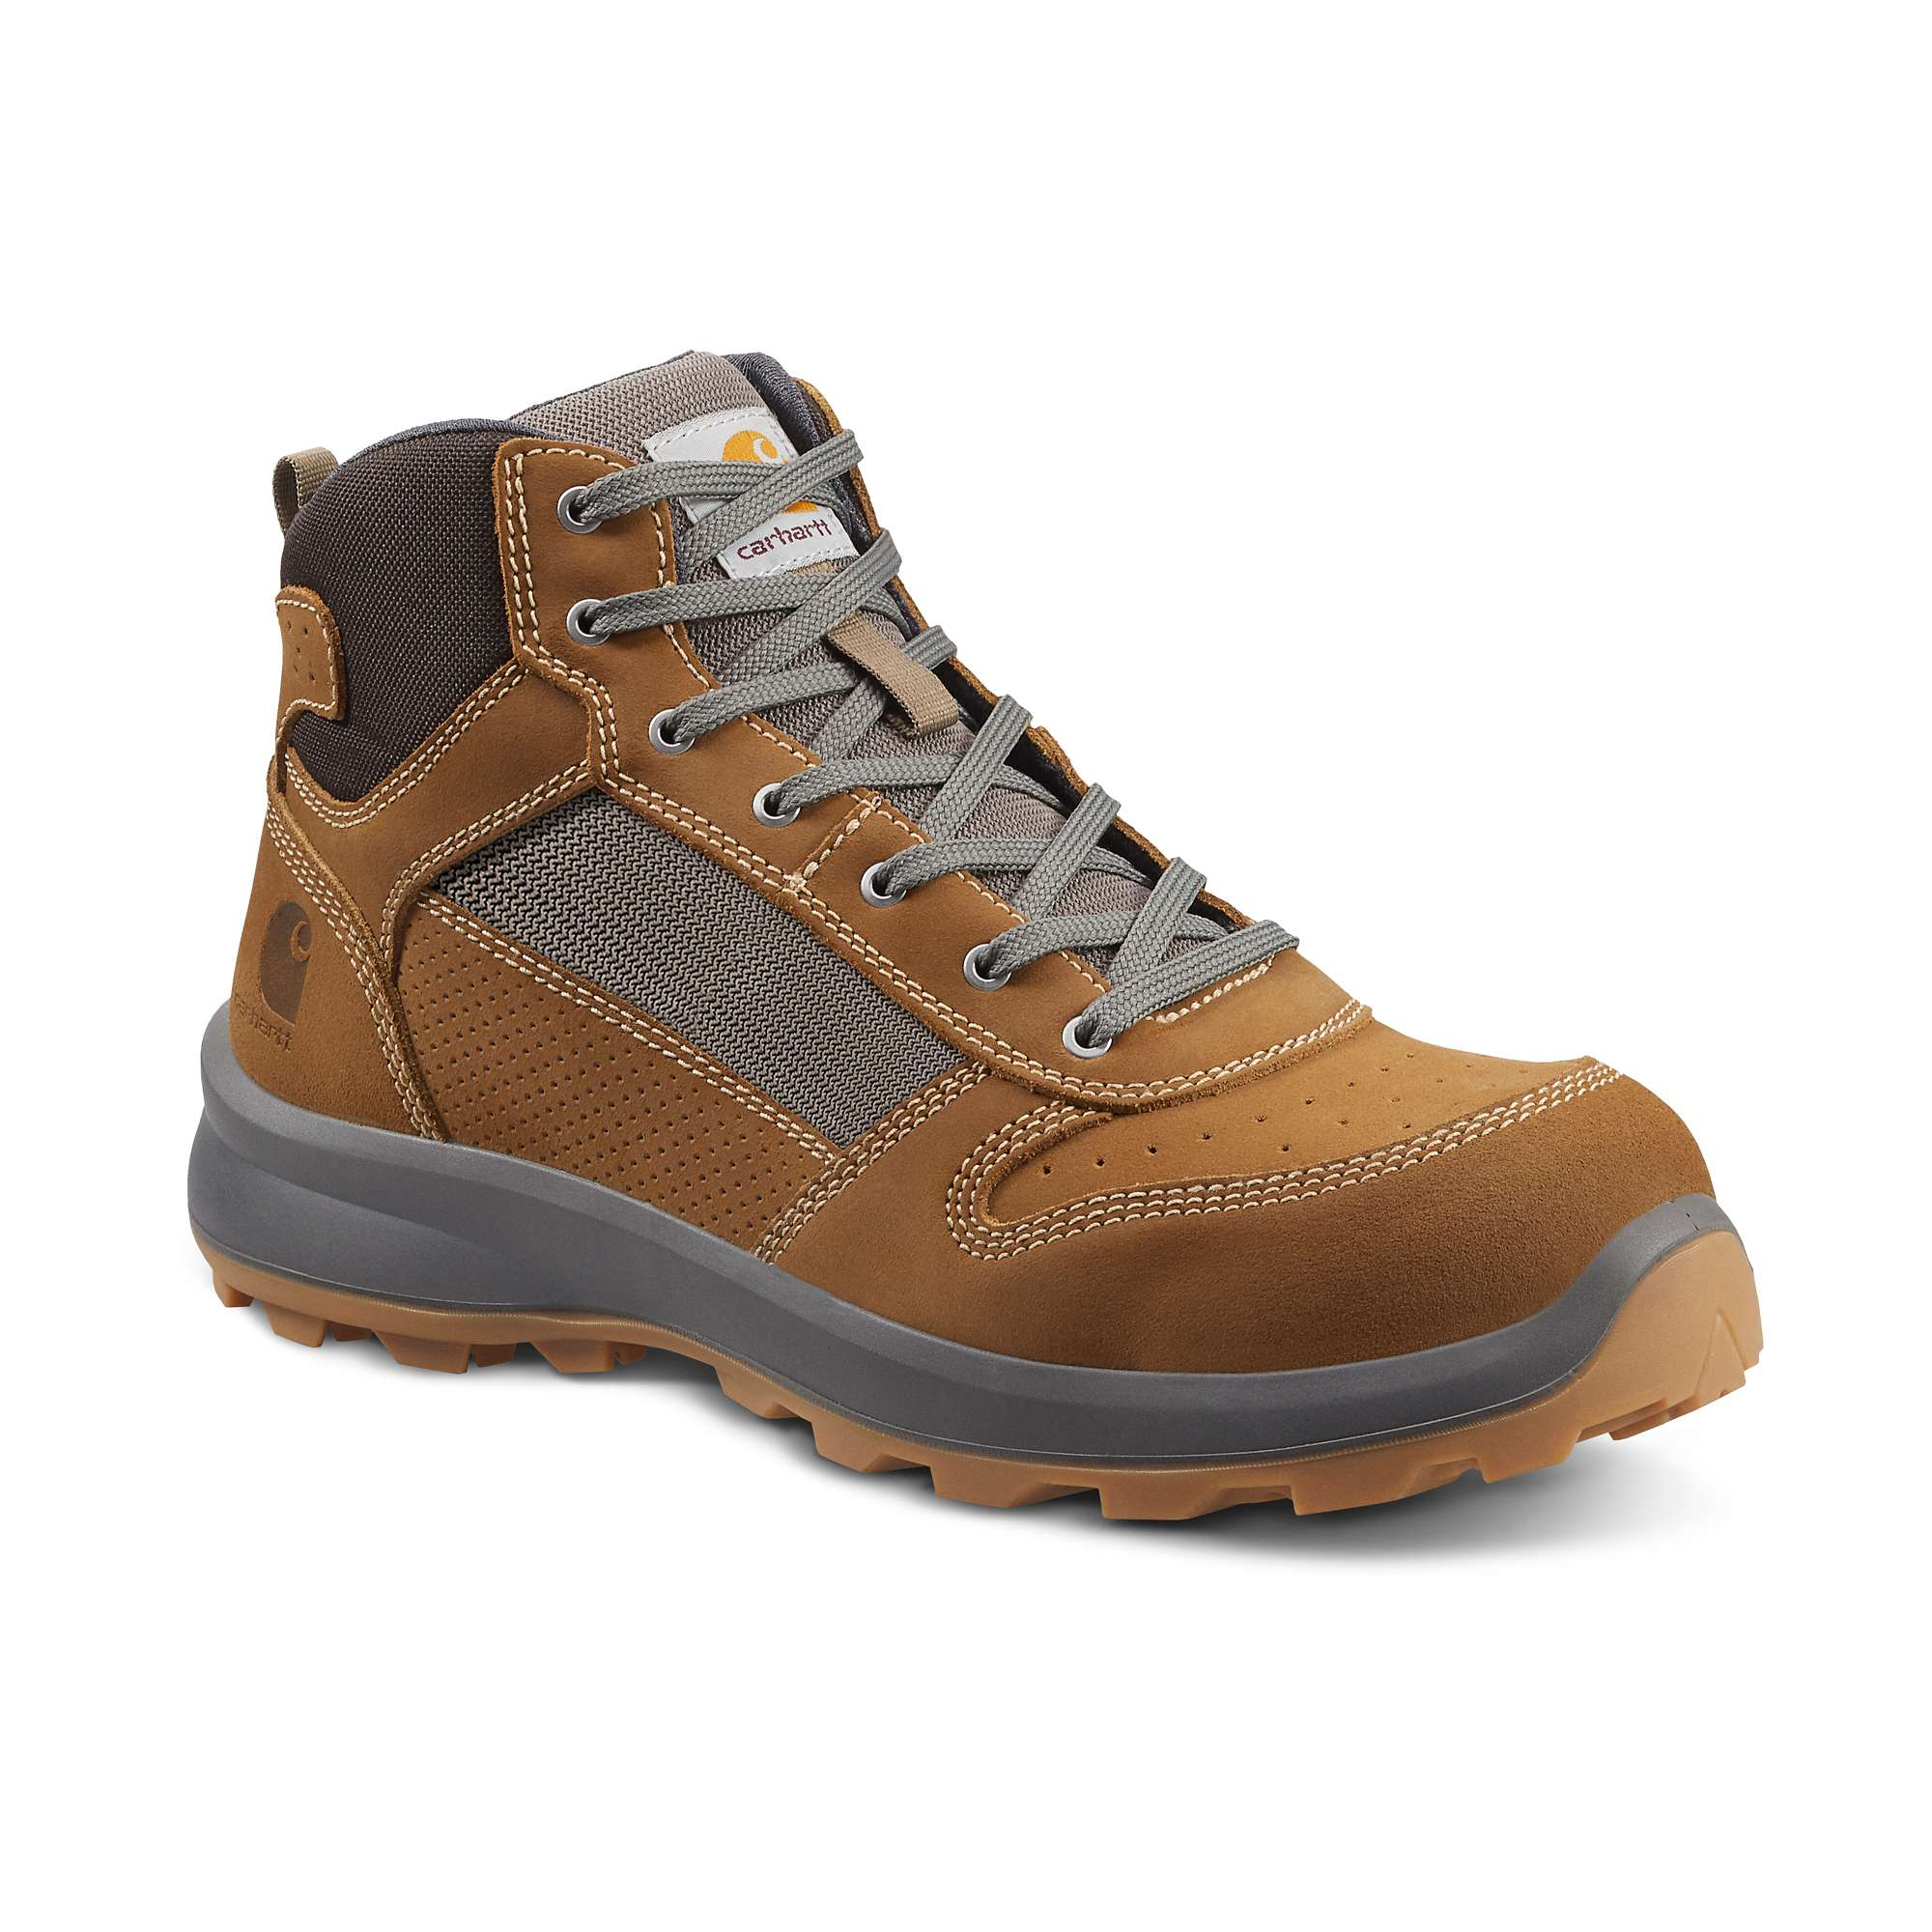 Carhartt MICHIGAN MID RUGGED FLEX S1P SAFETY SHOE